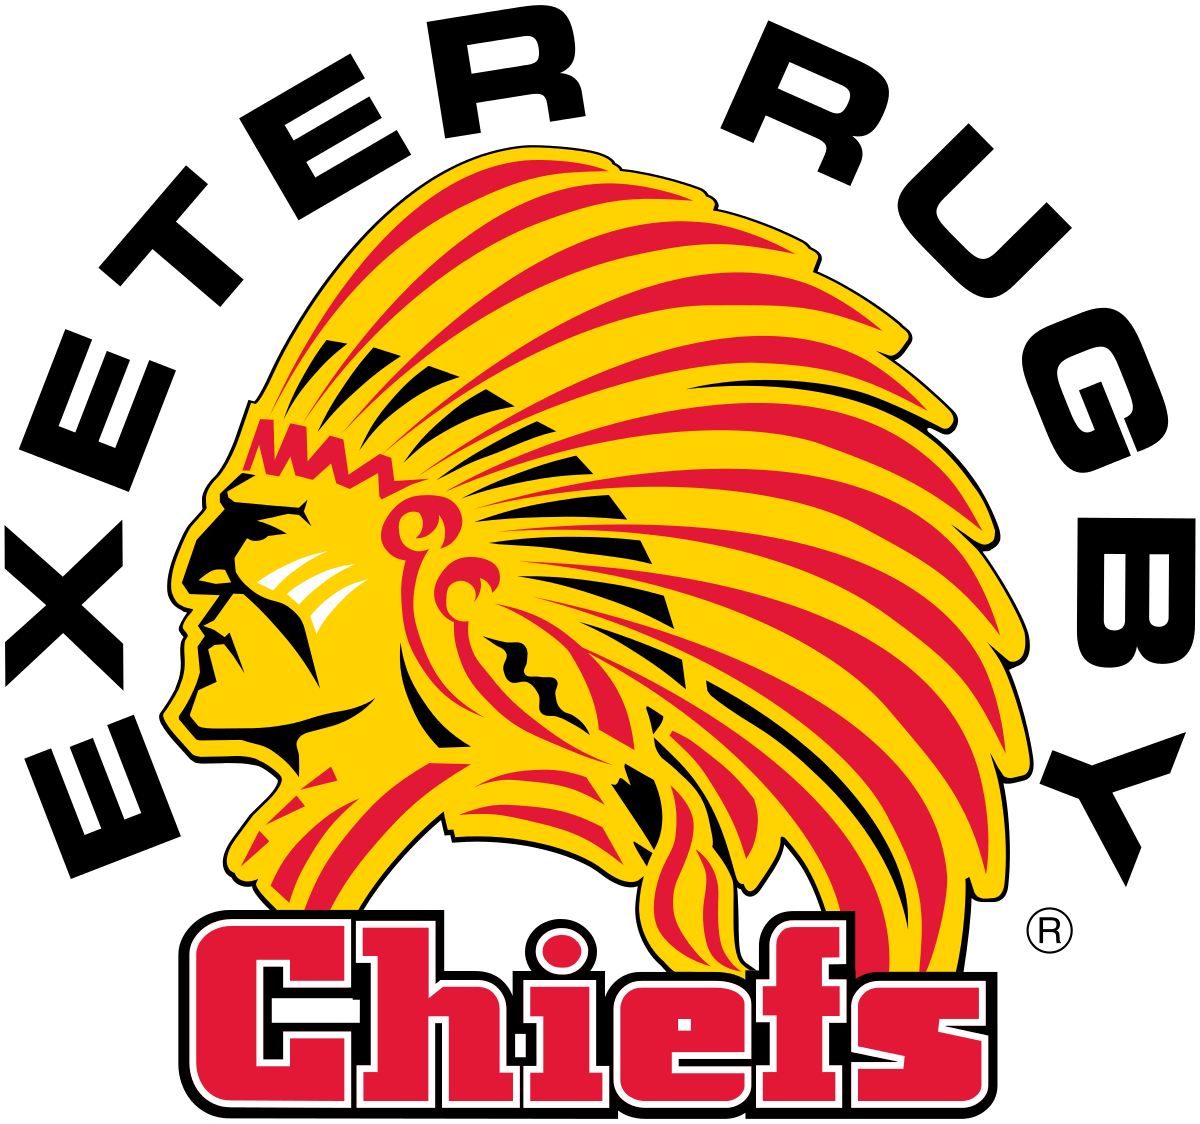 chiefs logo png 20 free Cliparts | Download images on ...